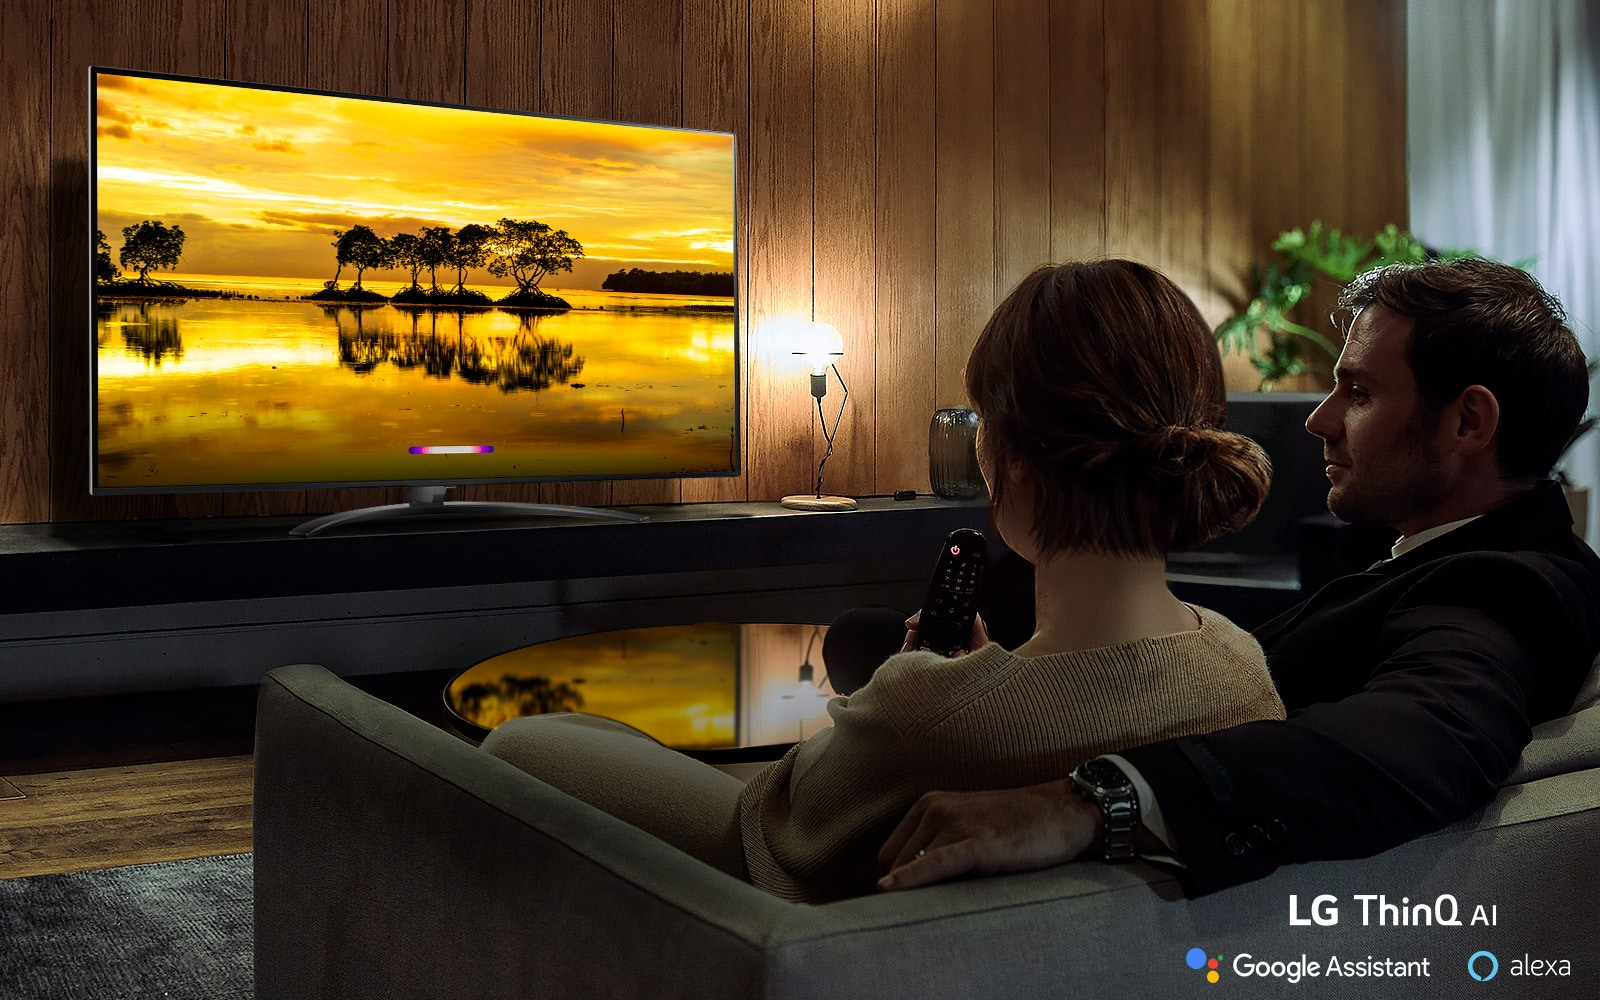 Introducing a more intelligent TV with LG ThinQ® AI